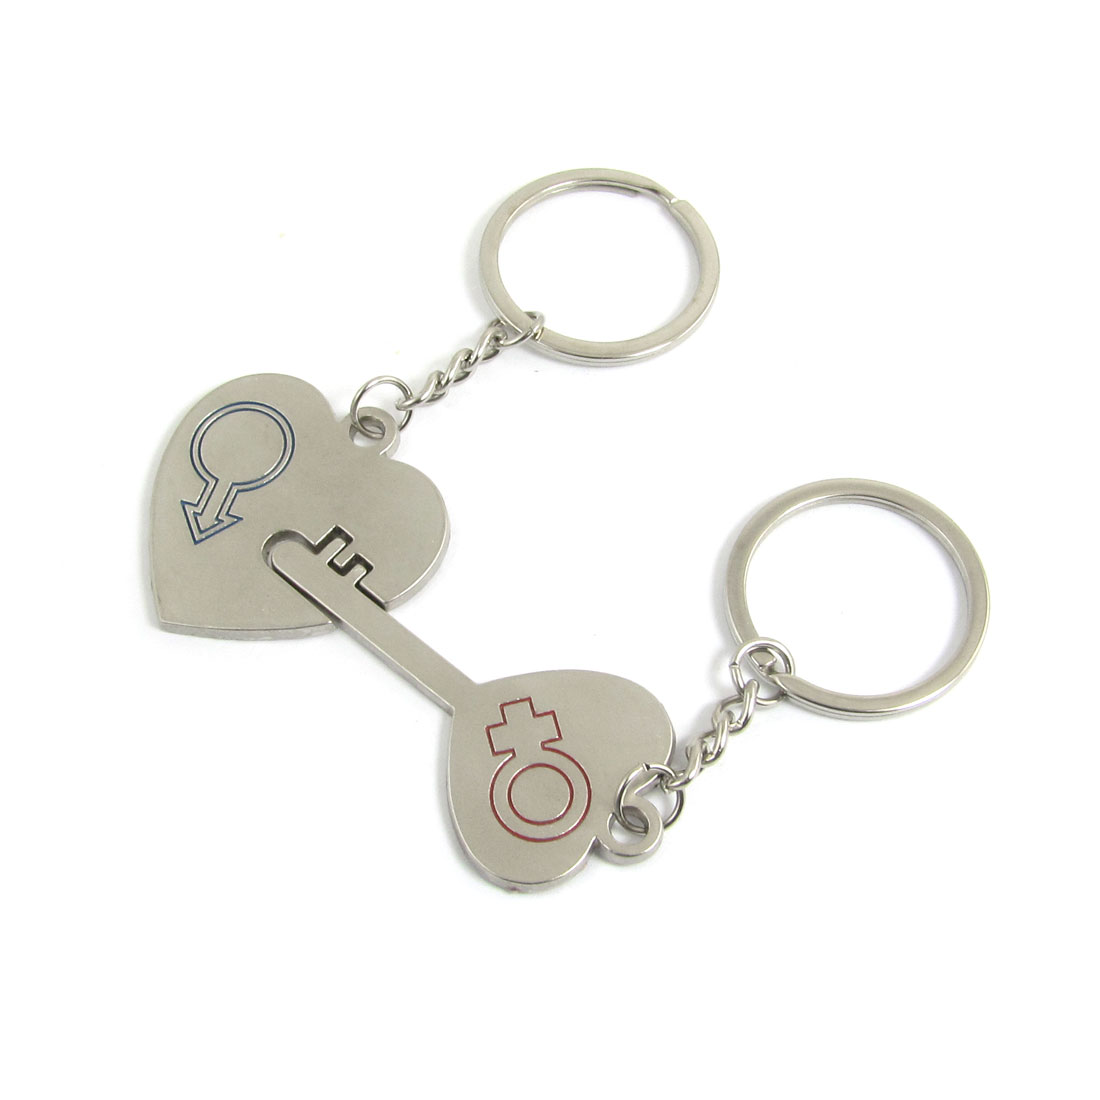 Pair Heart Shaped Lock Key Keychain Silver Tone for Lovers